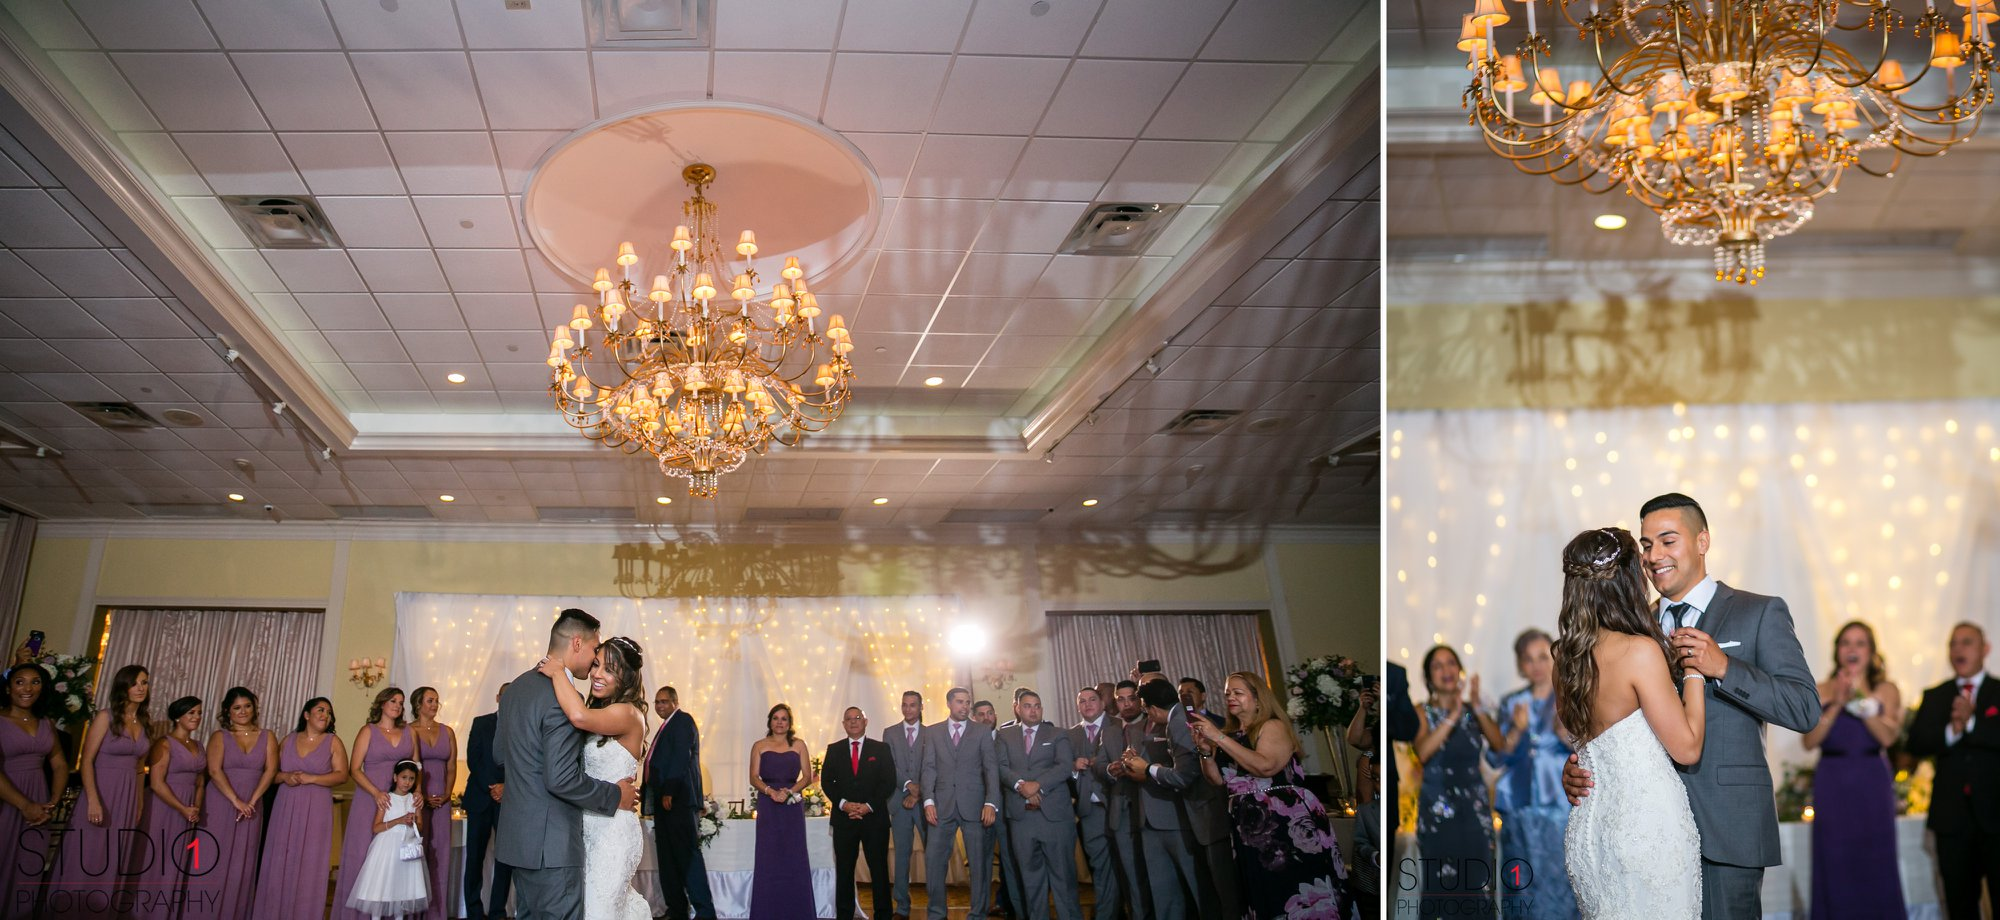 What Is A Wedding Reception.Give Your Wedding Reception An Elegant Touch With This Shining Attraction The Grandview